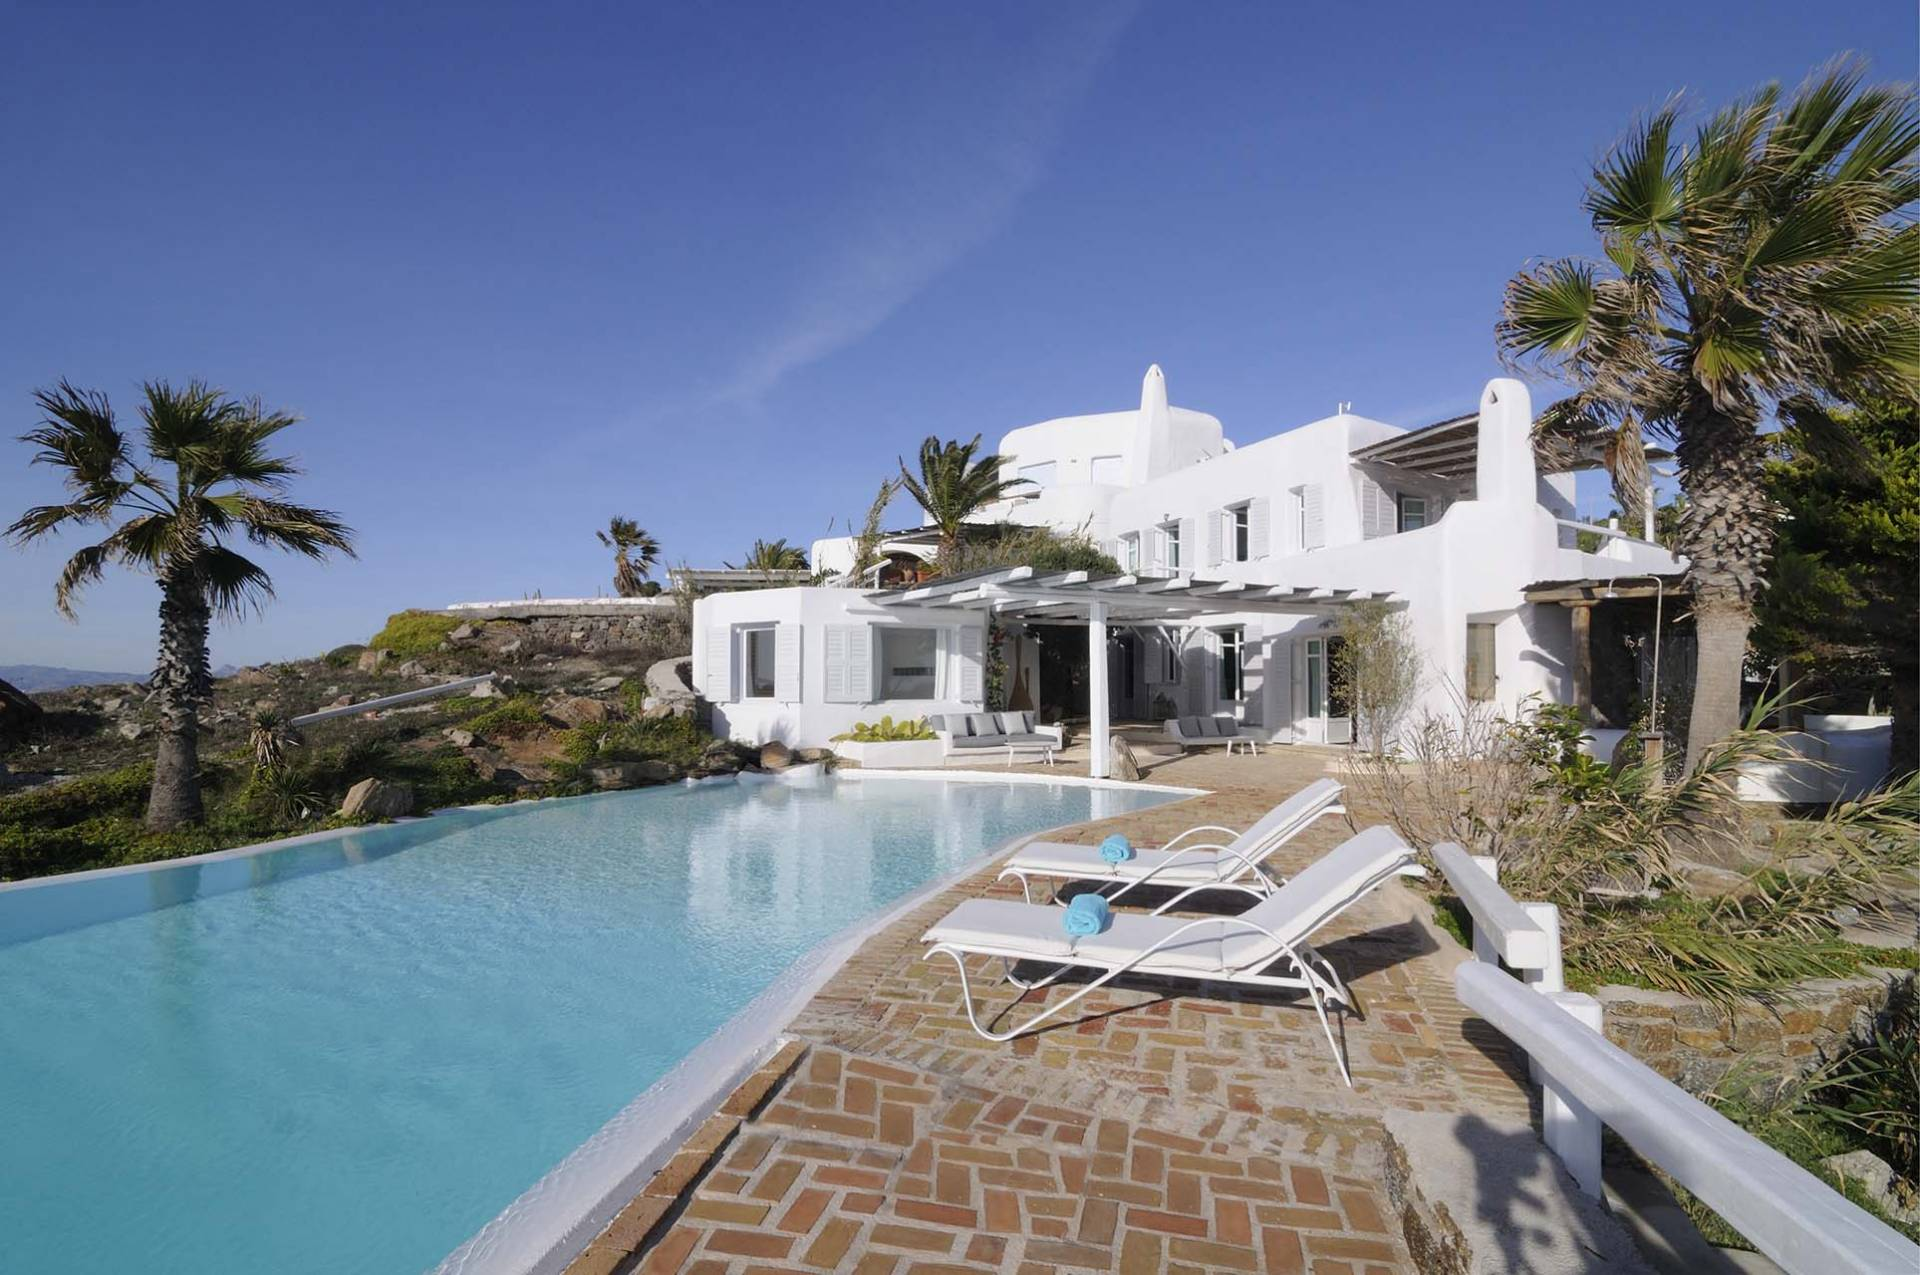 Mykonos luxury villa Claudine in Aleomandra